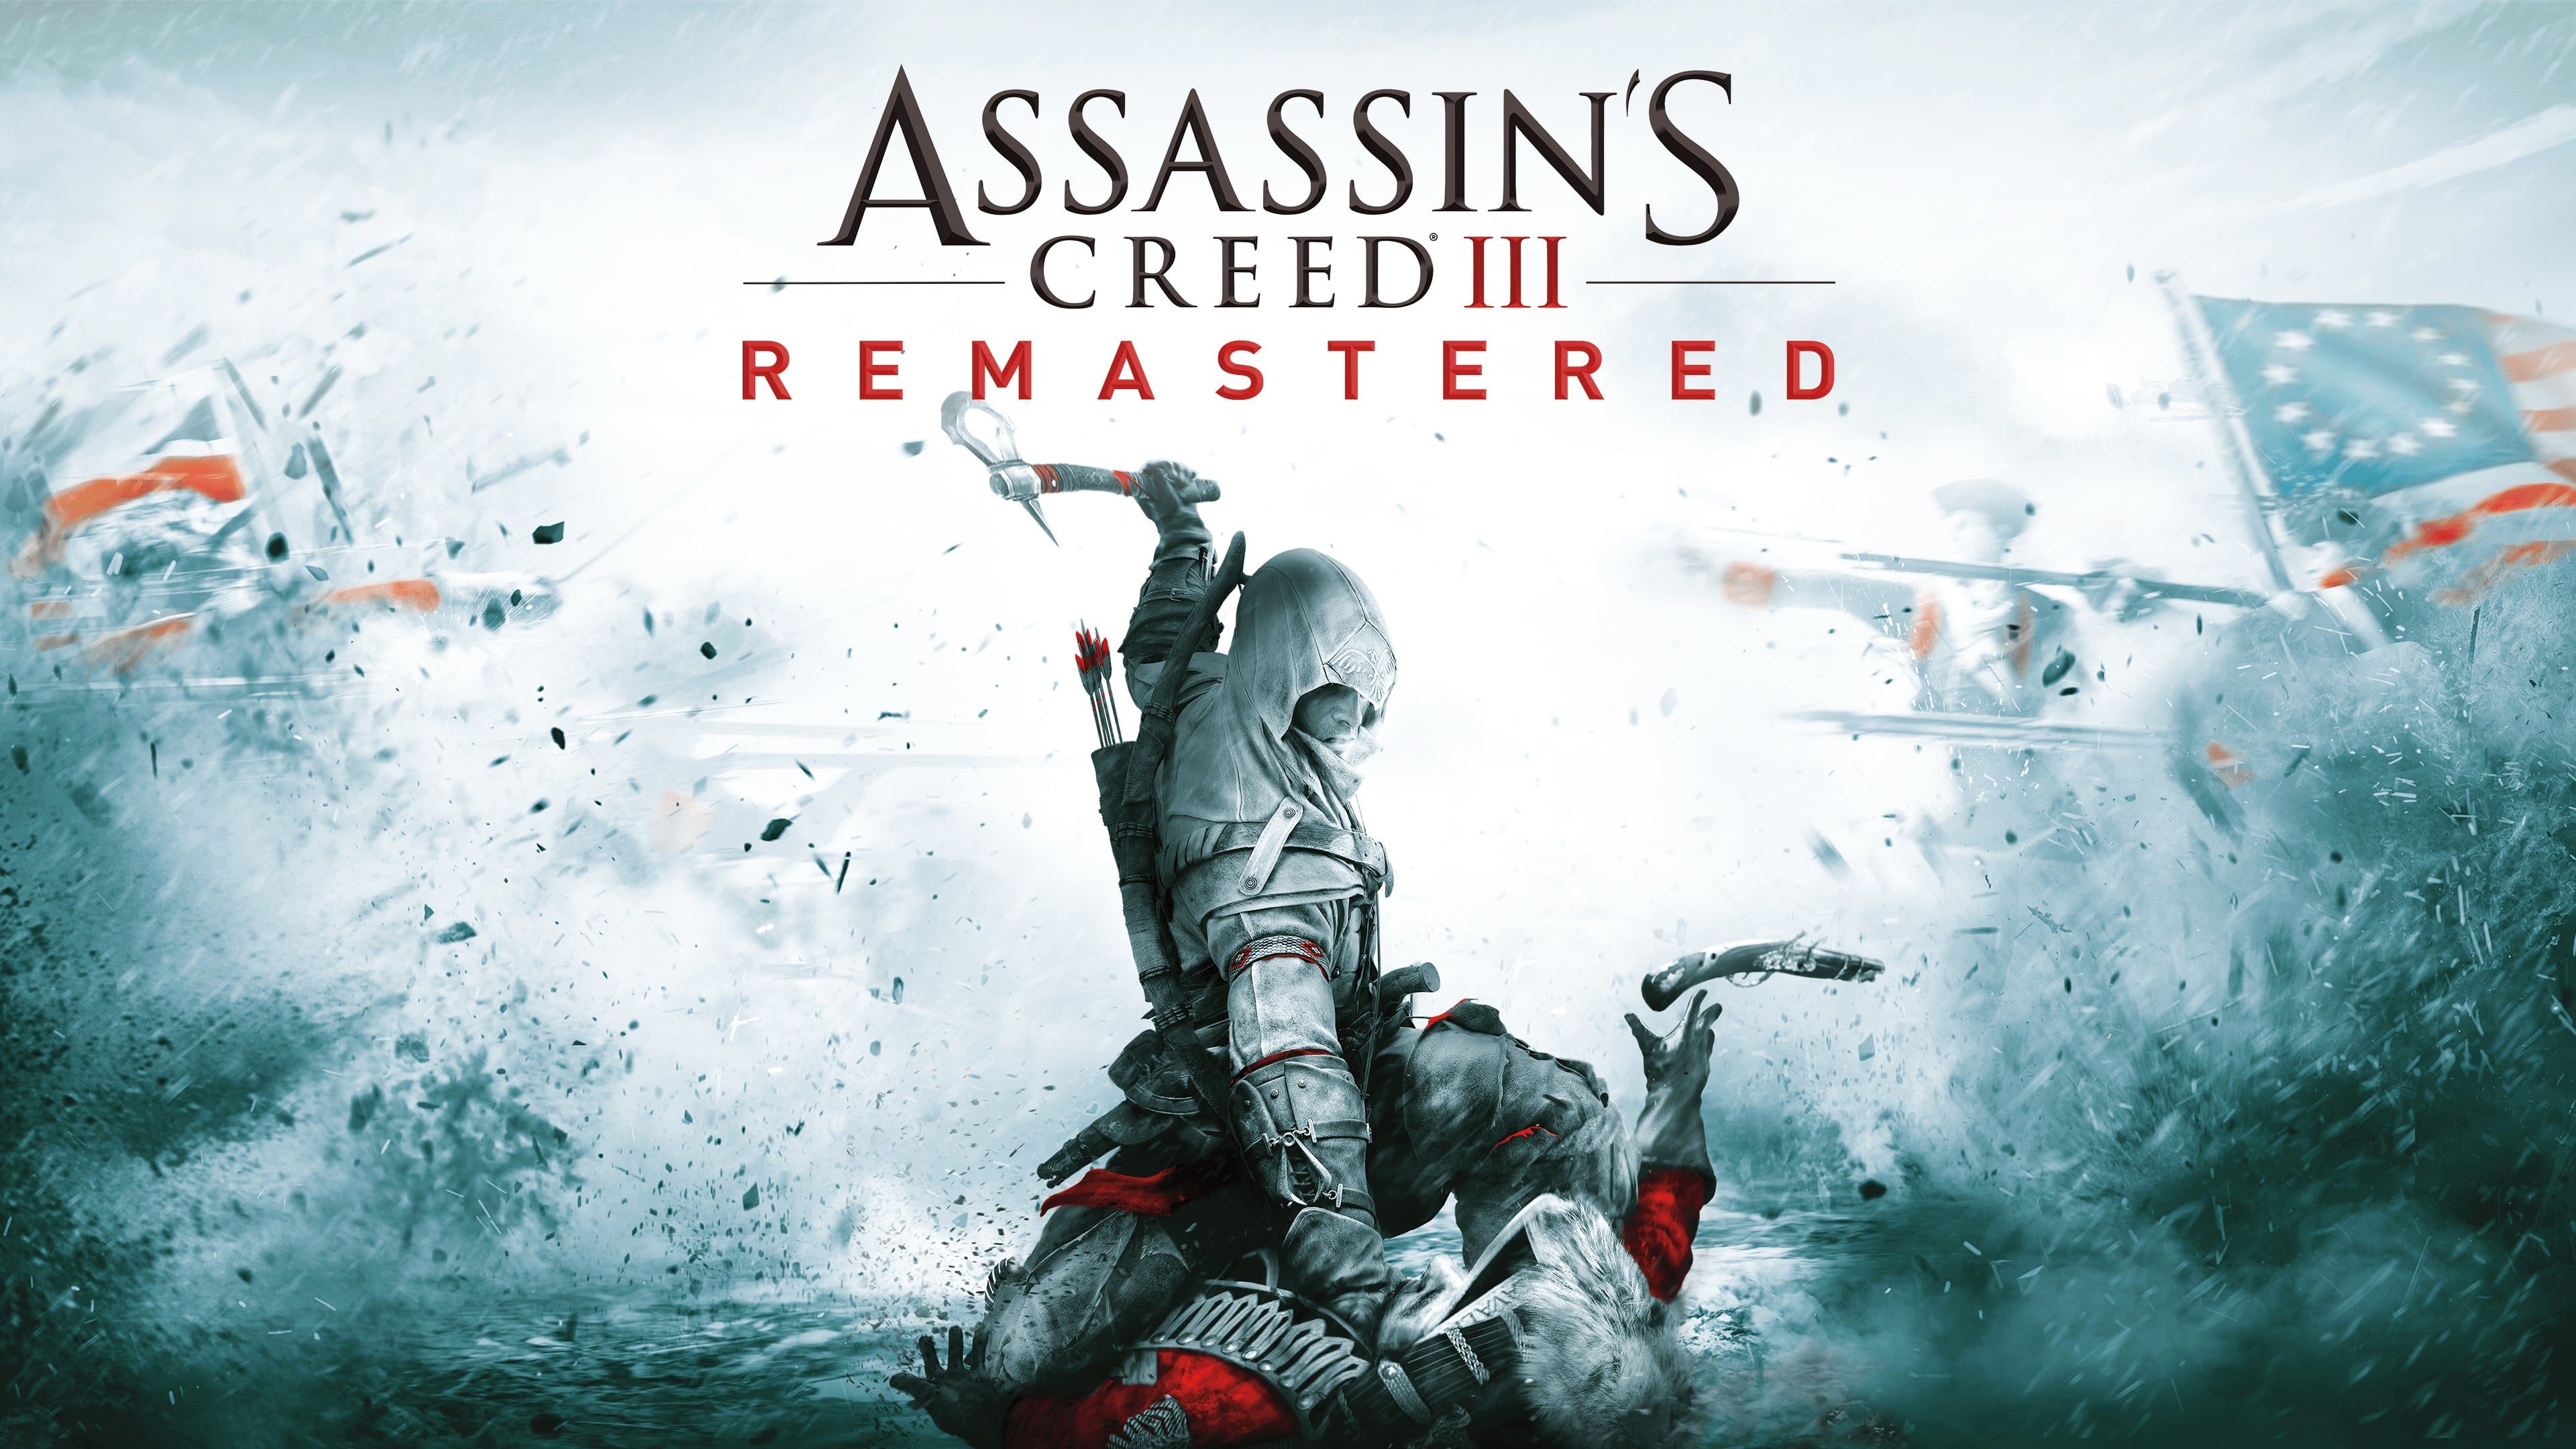 Assassin S Creed Iii Remastered Now Available In The Philippines